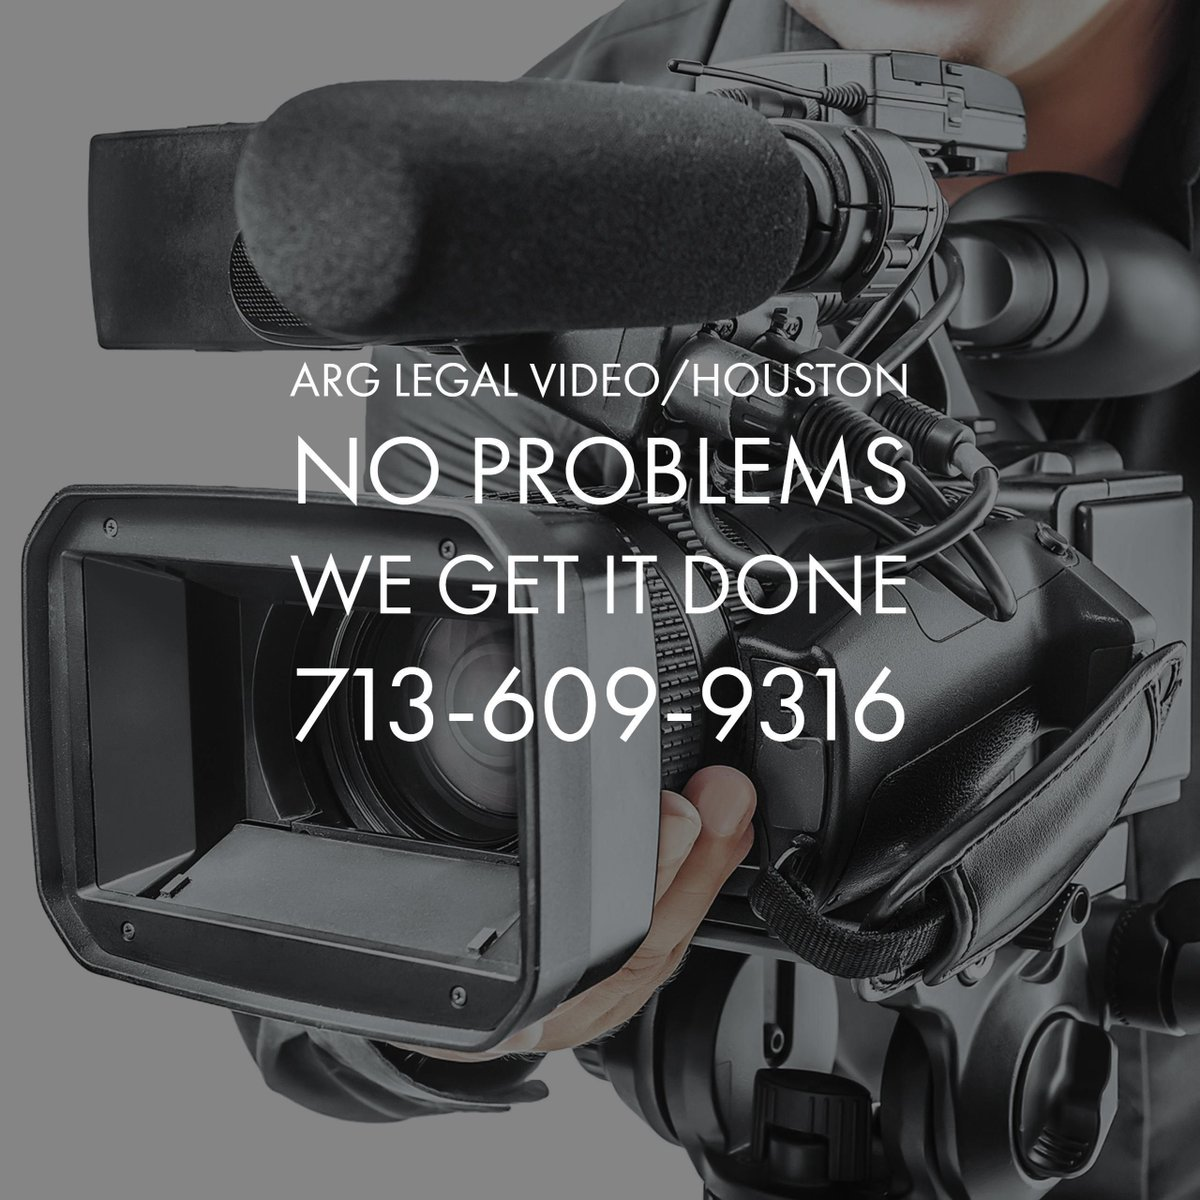 Our story is simple. Clients call us, we do the job and there are no problems.  http://www. arg-legalvideo.com  &nbsp;   #houston #txlegal <br>http://pic.twitter.com/wHlCM6yruM